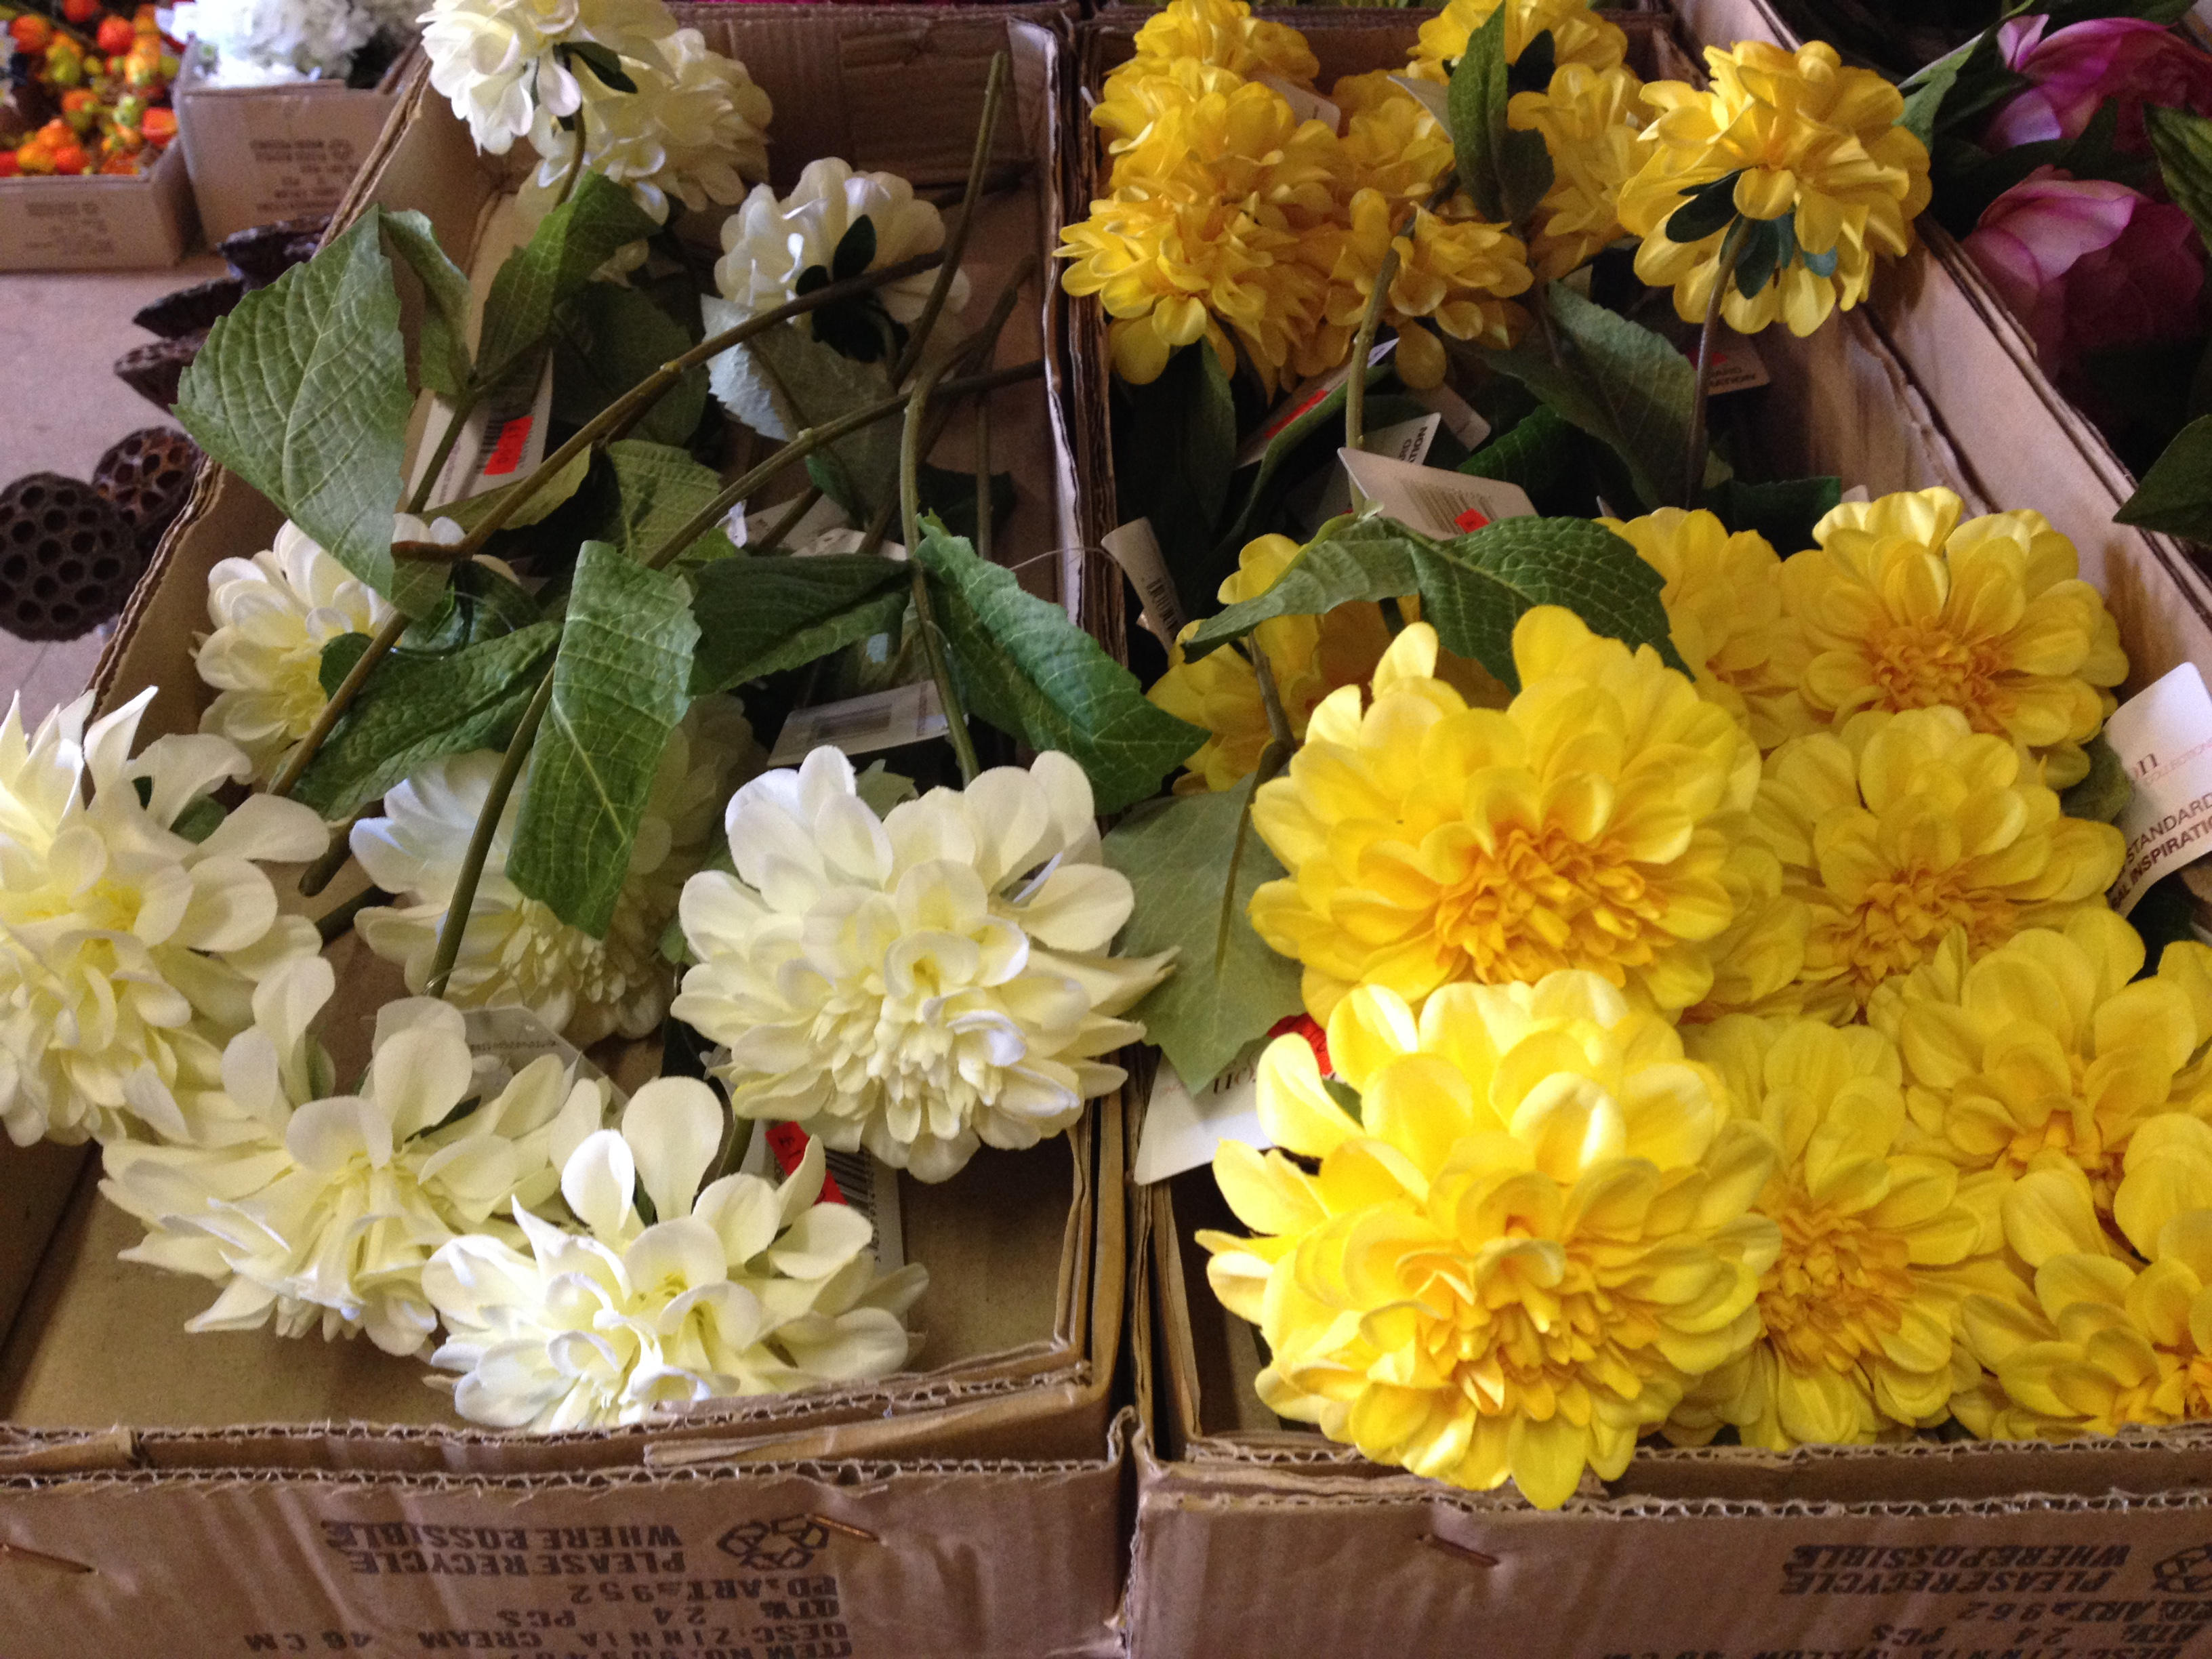 New silk flowers into the warehouse cathedral wholesale florists img2794 img2793 img2792 img2791 mightylinksfo